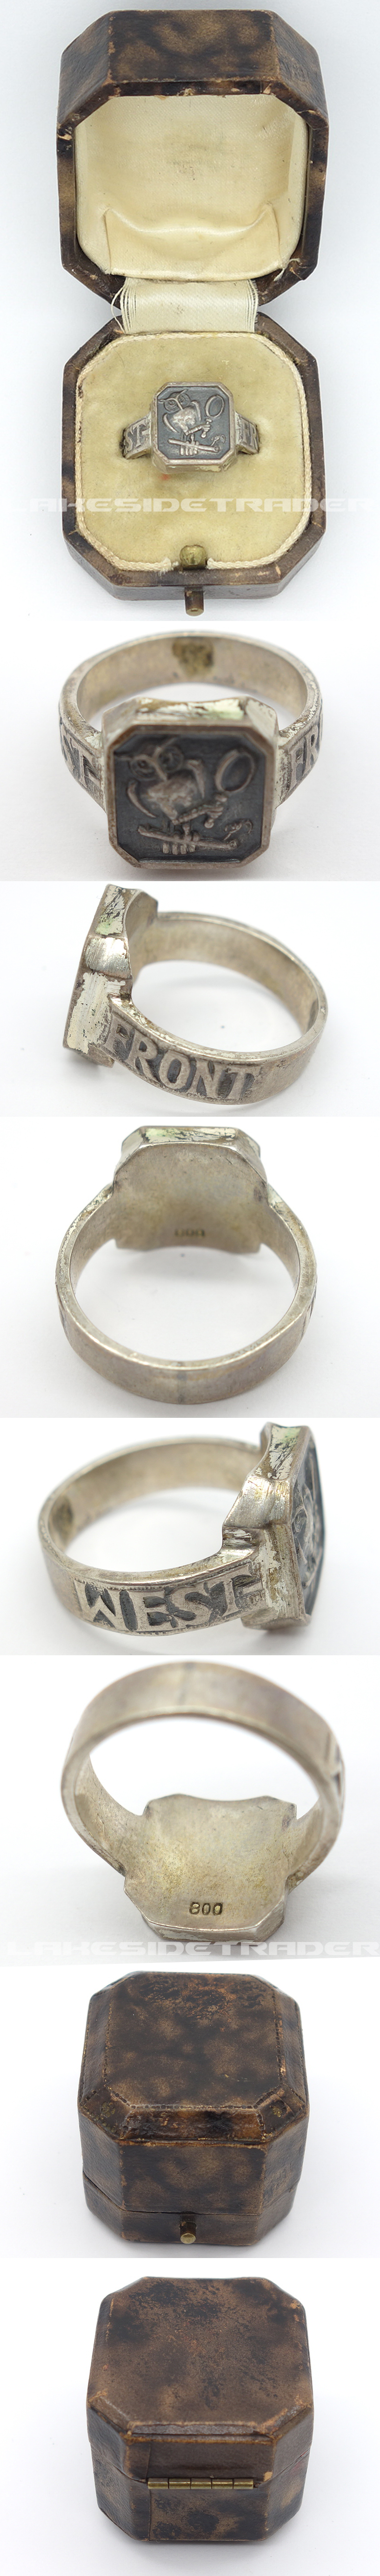 Luftwaffe West Front Ring in issue box